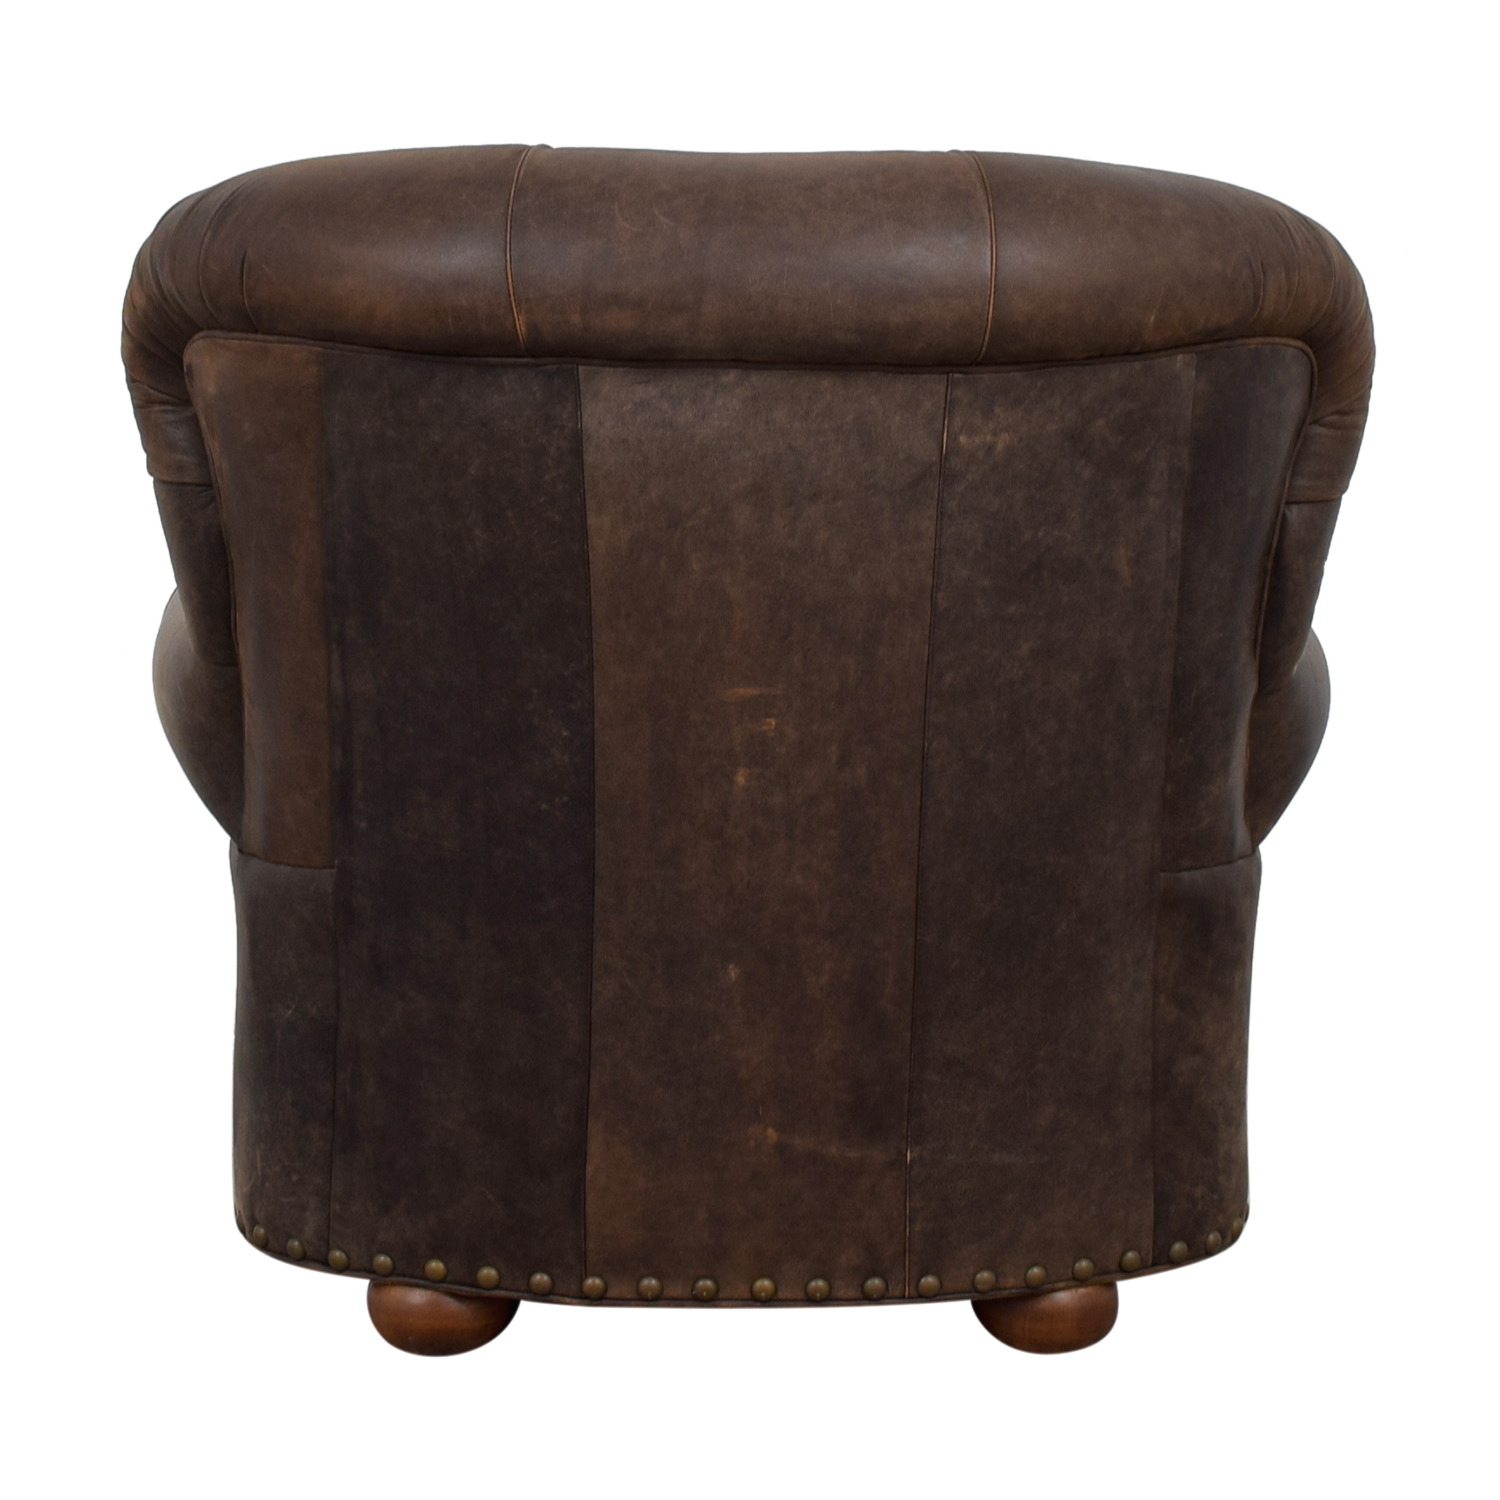 tufted nailhead chair ikea dining covers henriksdal 88 off restoration hardware churchill brown leather nyc